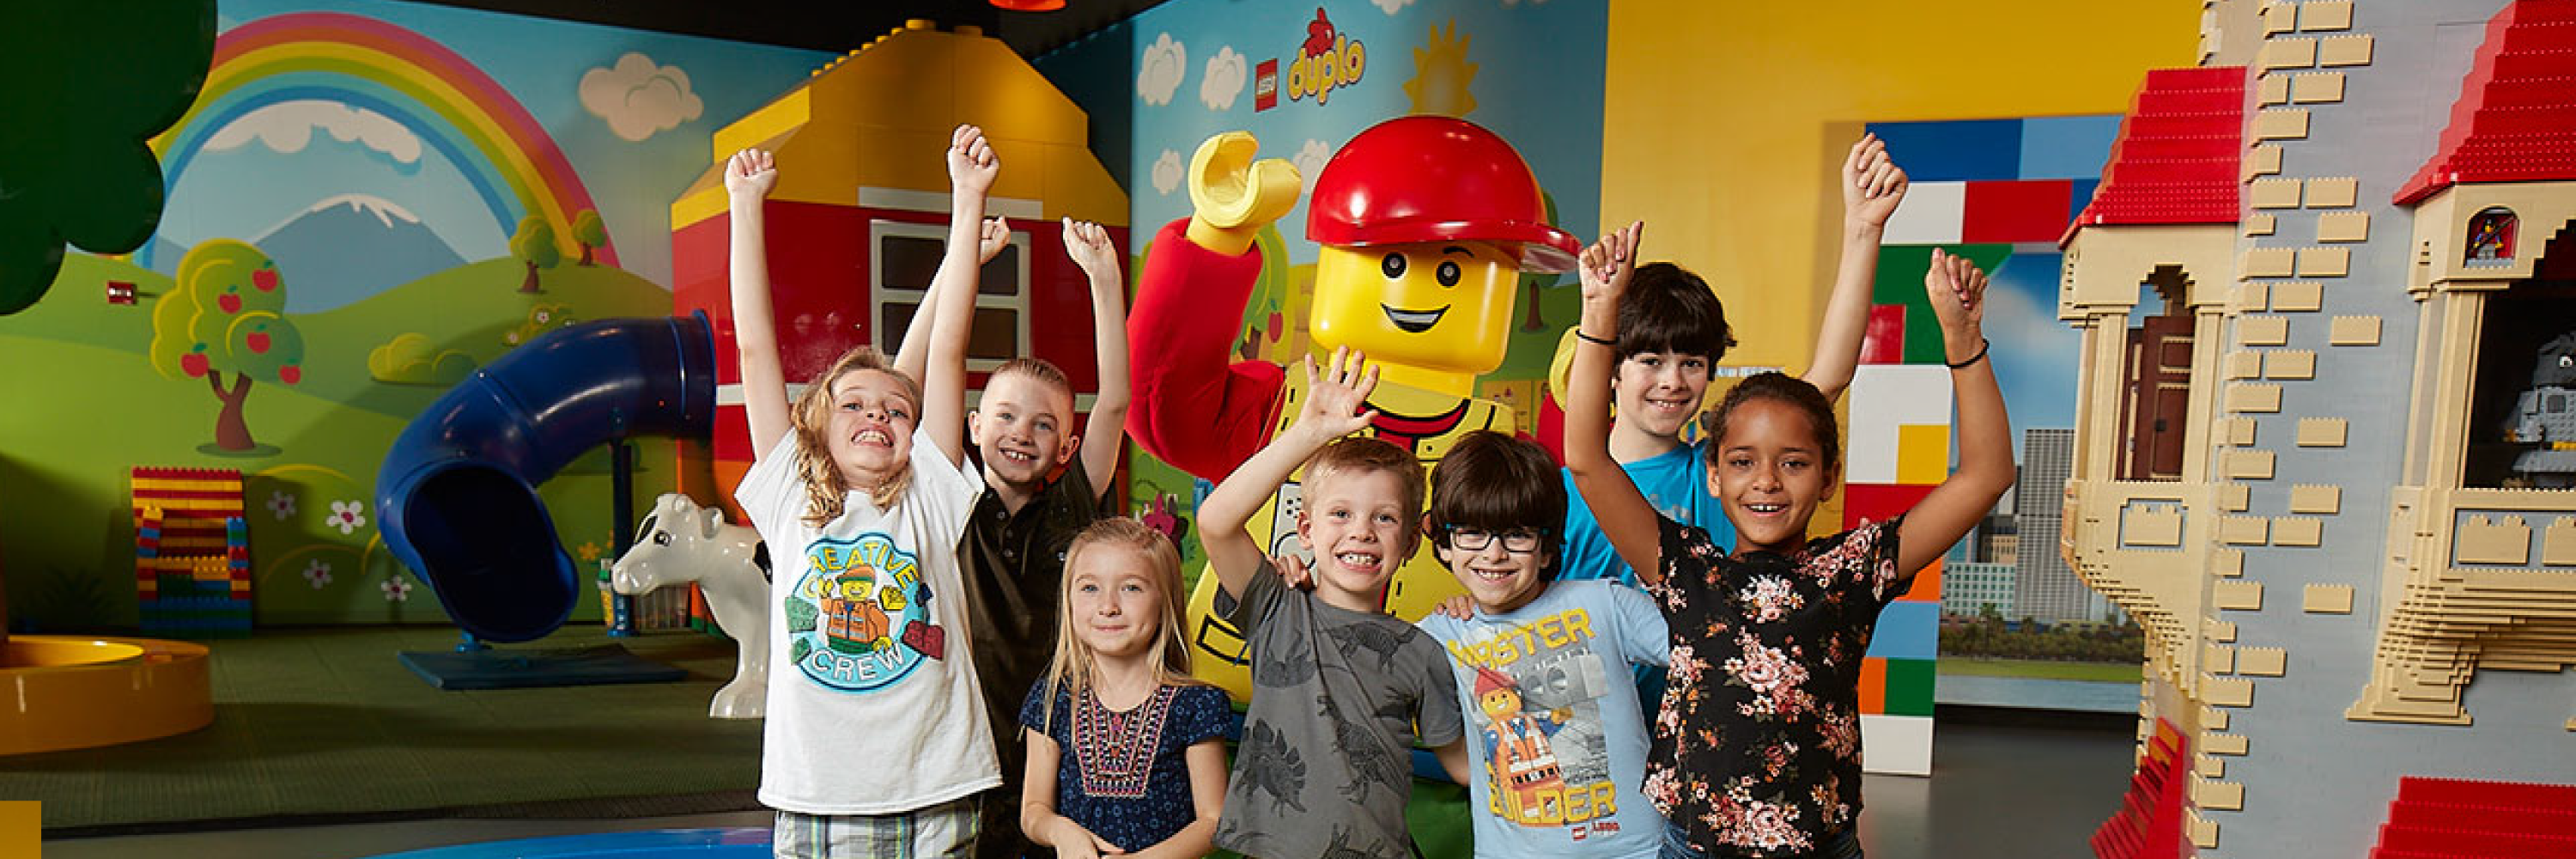 Meet LEGO Characters at LEGOLAND Discovery Center